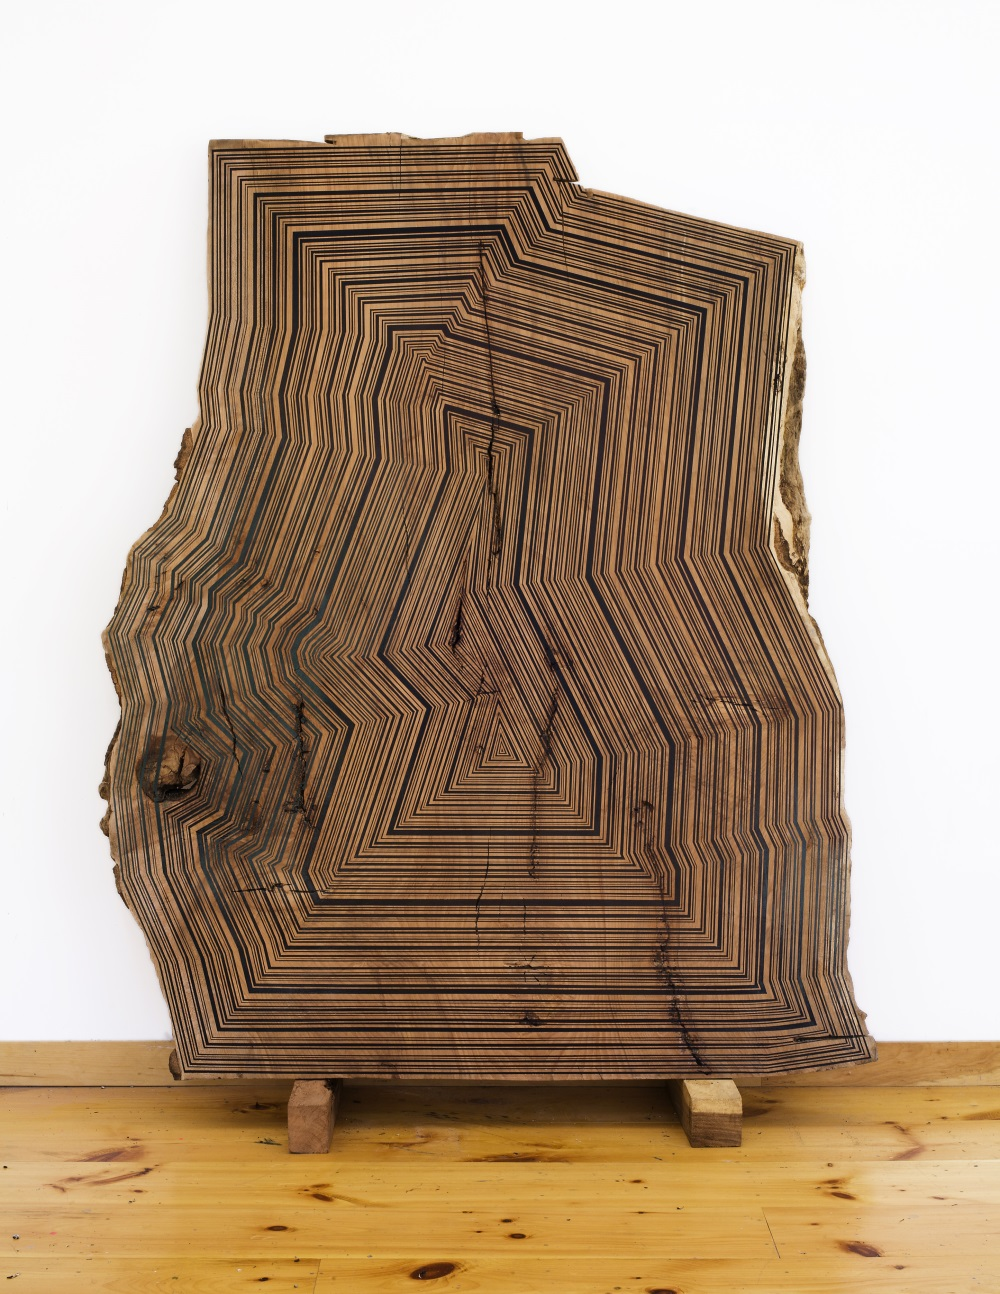 Jason Middlebrook, Once Again a Version of Nature Through My Eyes, 2011.